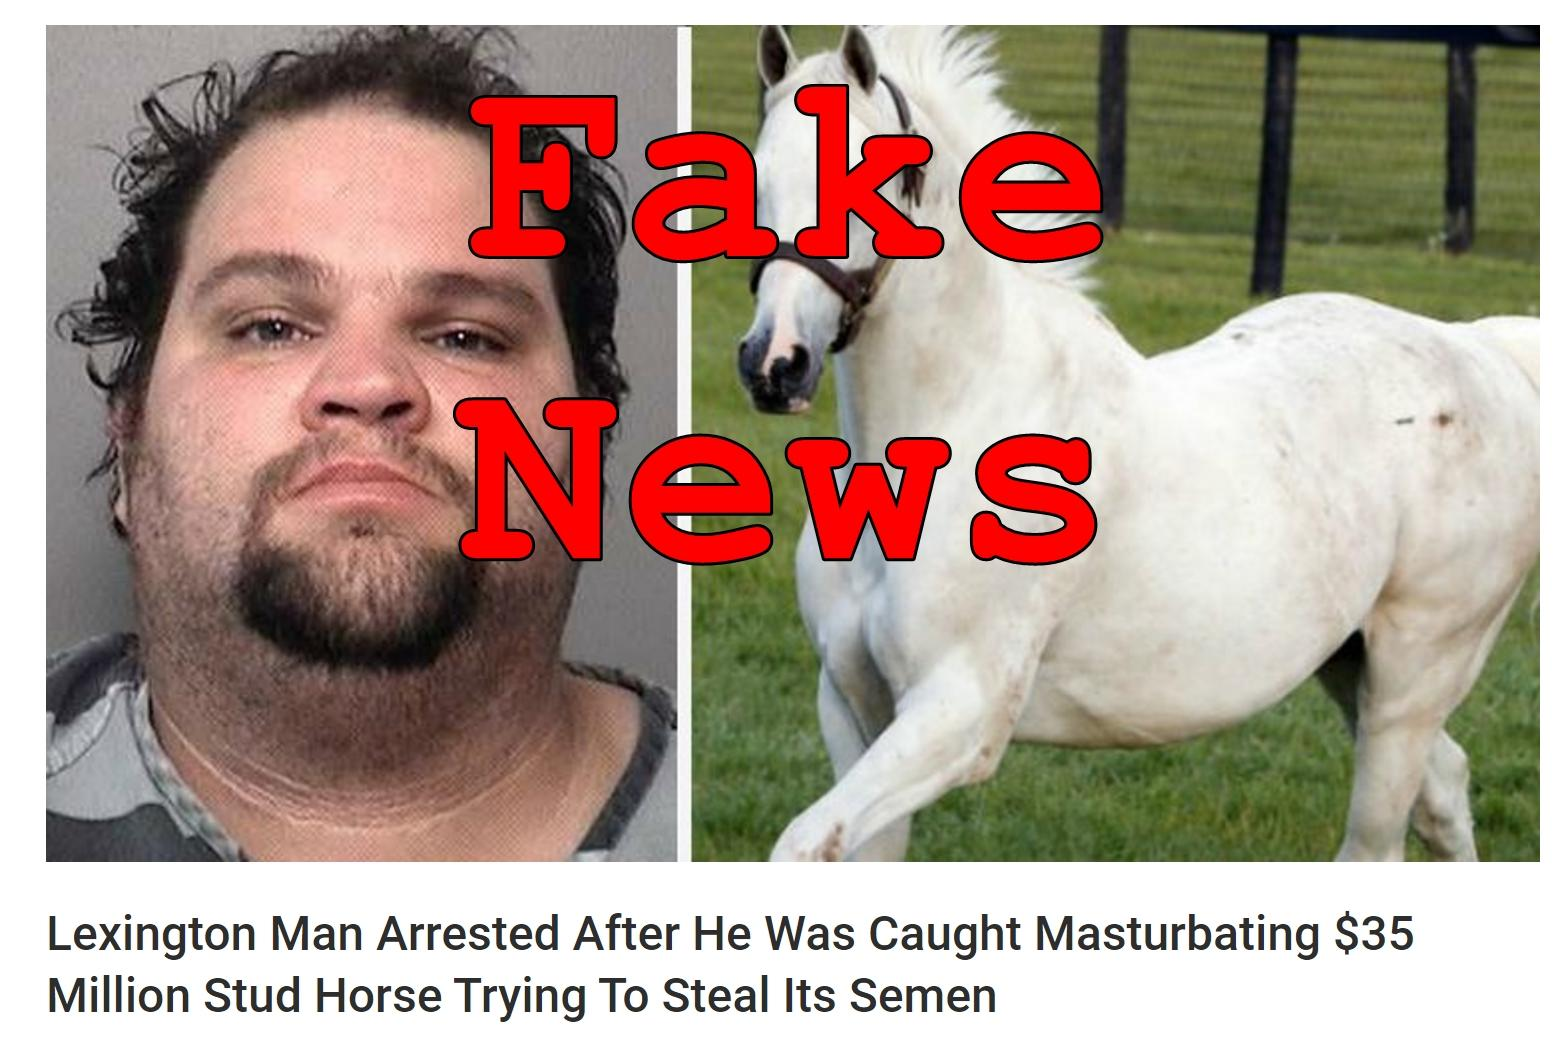 Fake News: Lexington Man NOT Arrested After He Was Caught Masturbating $35 Million Stud Horse Trying To Steal Its Semen